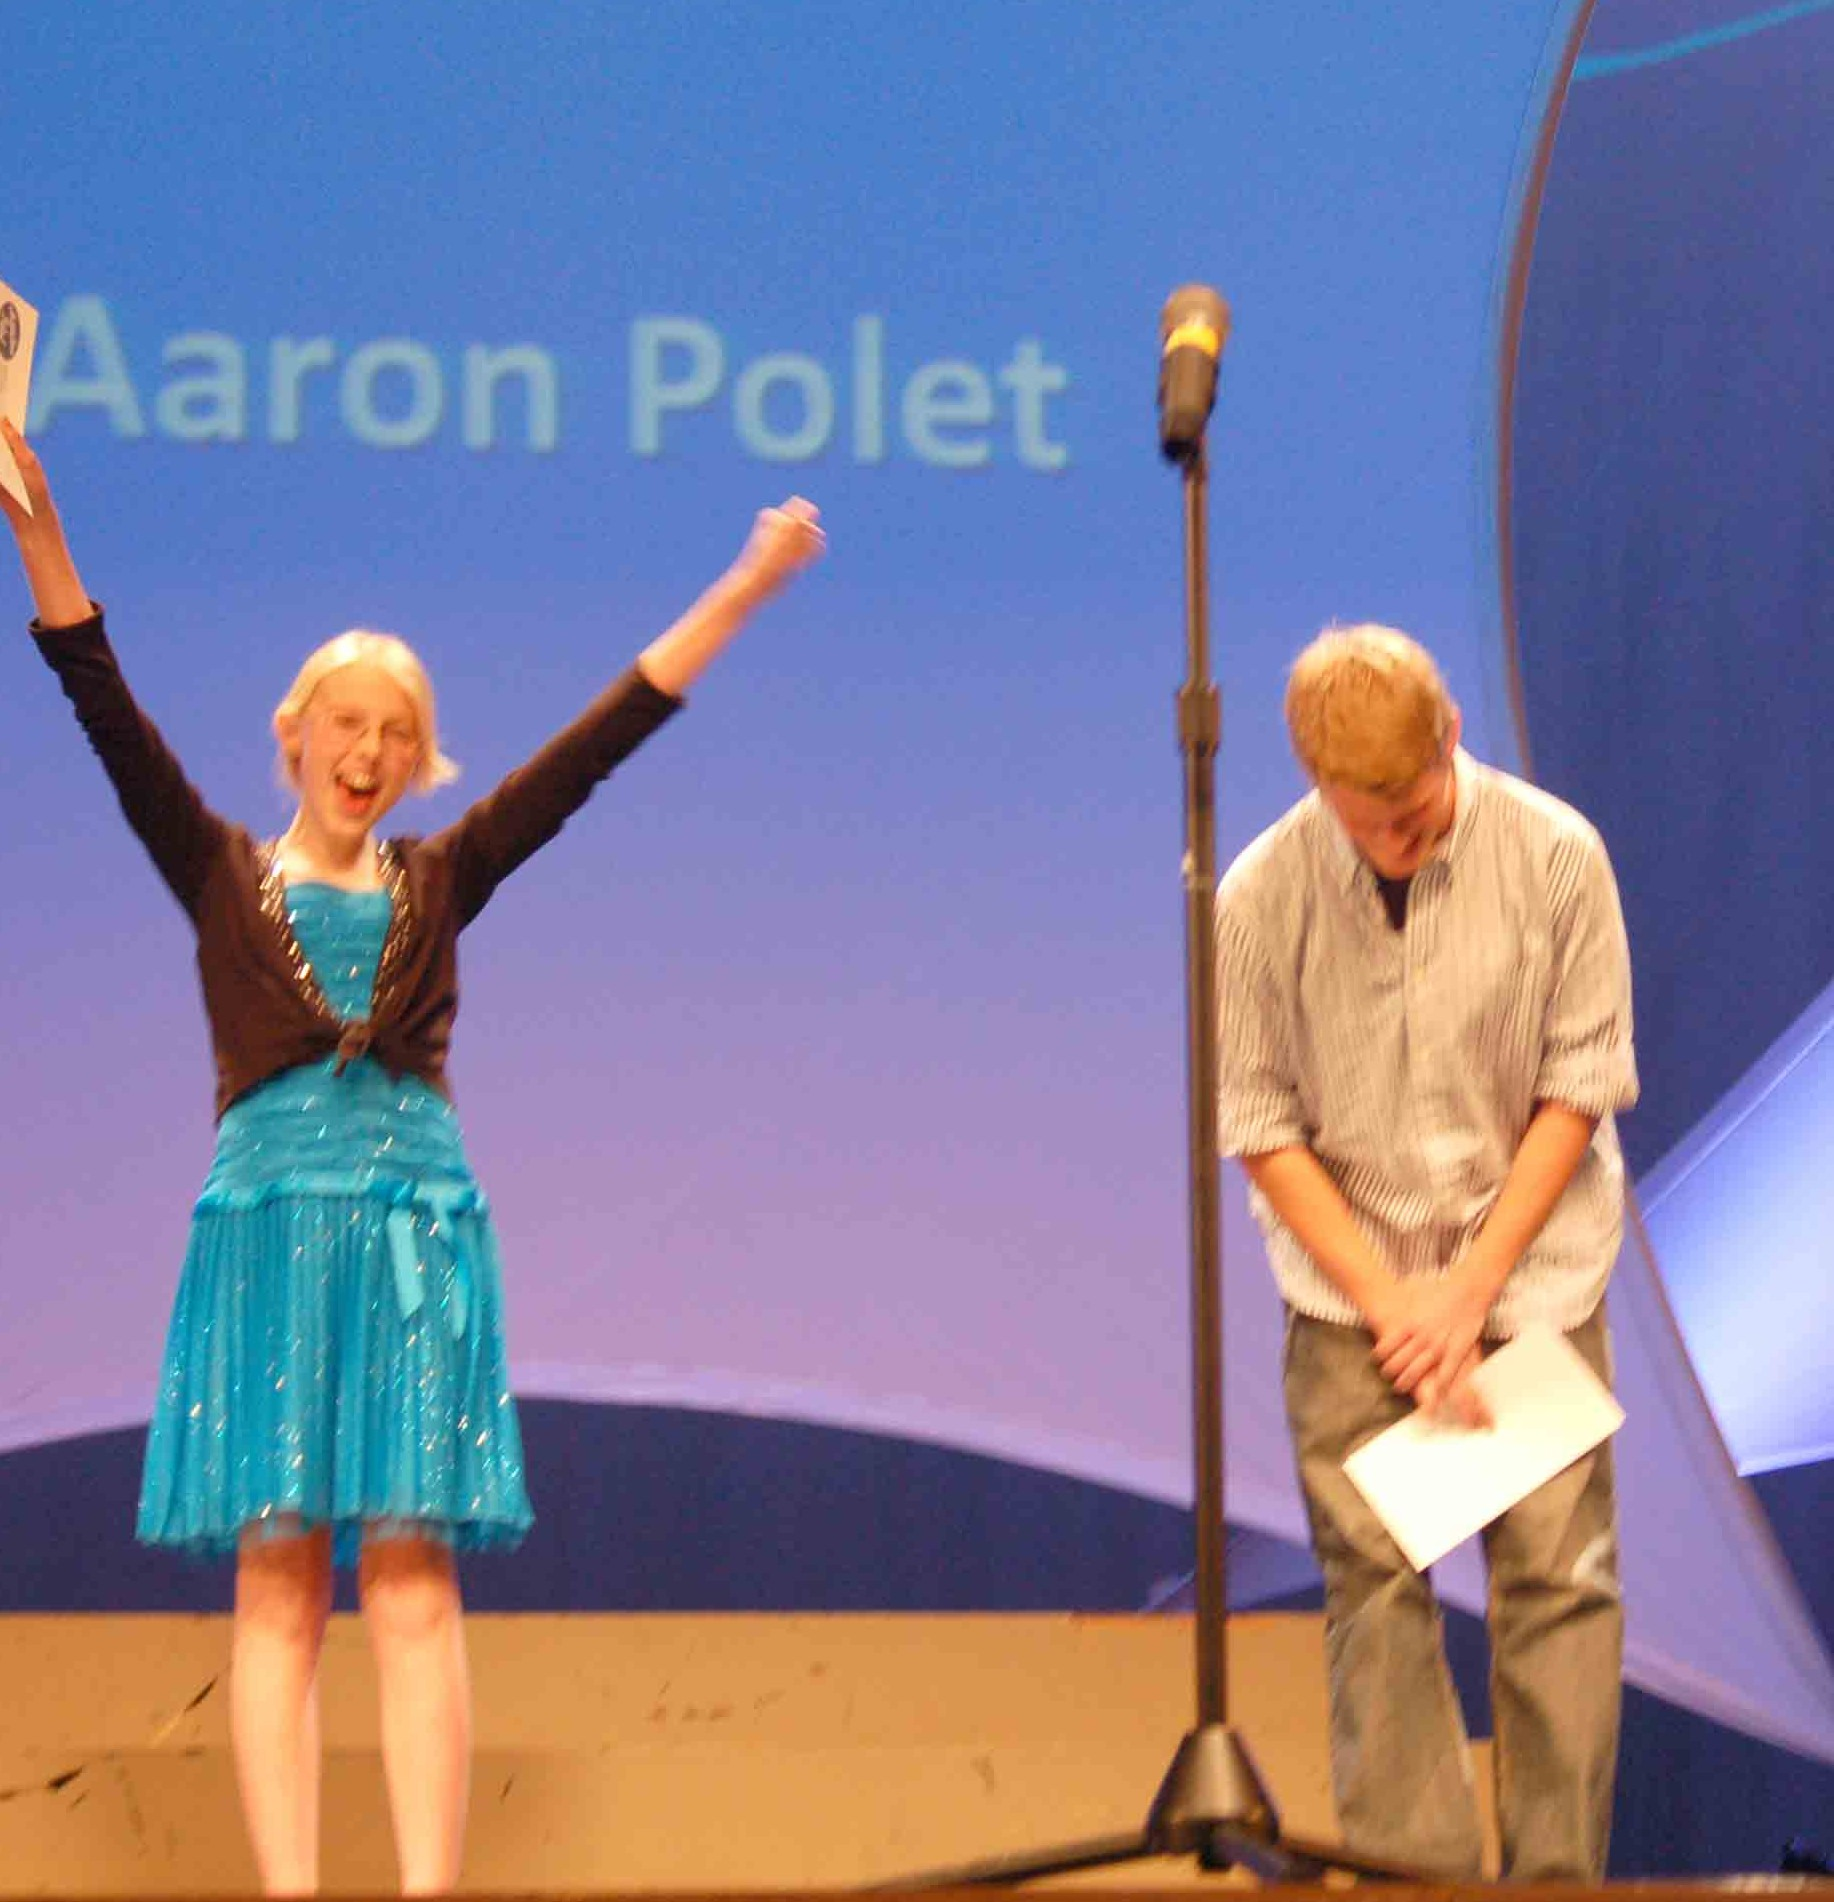 A very gracious Anna Cole celebrates the announcement that Aaron Polet has won this year's Hamilton Idol.  A humble Polet bows his head upon hearing the news.